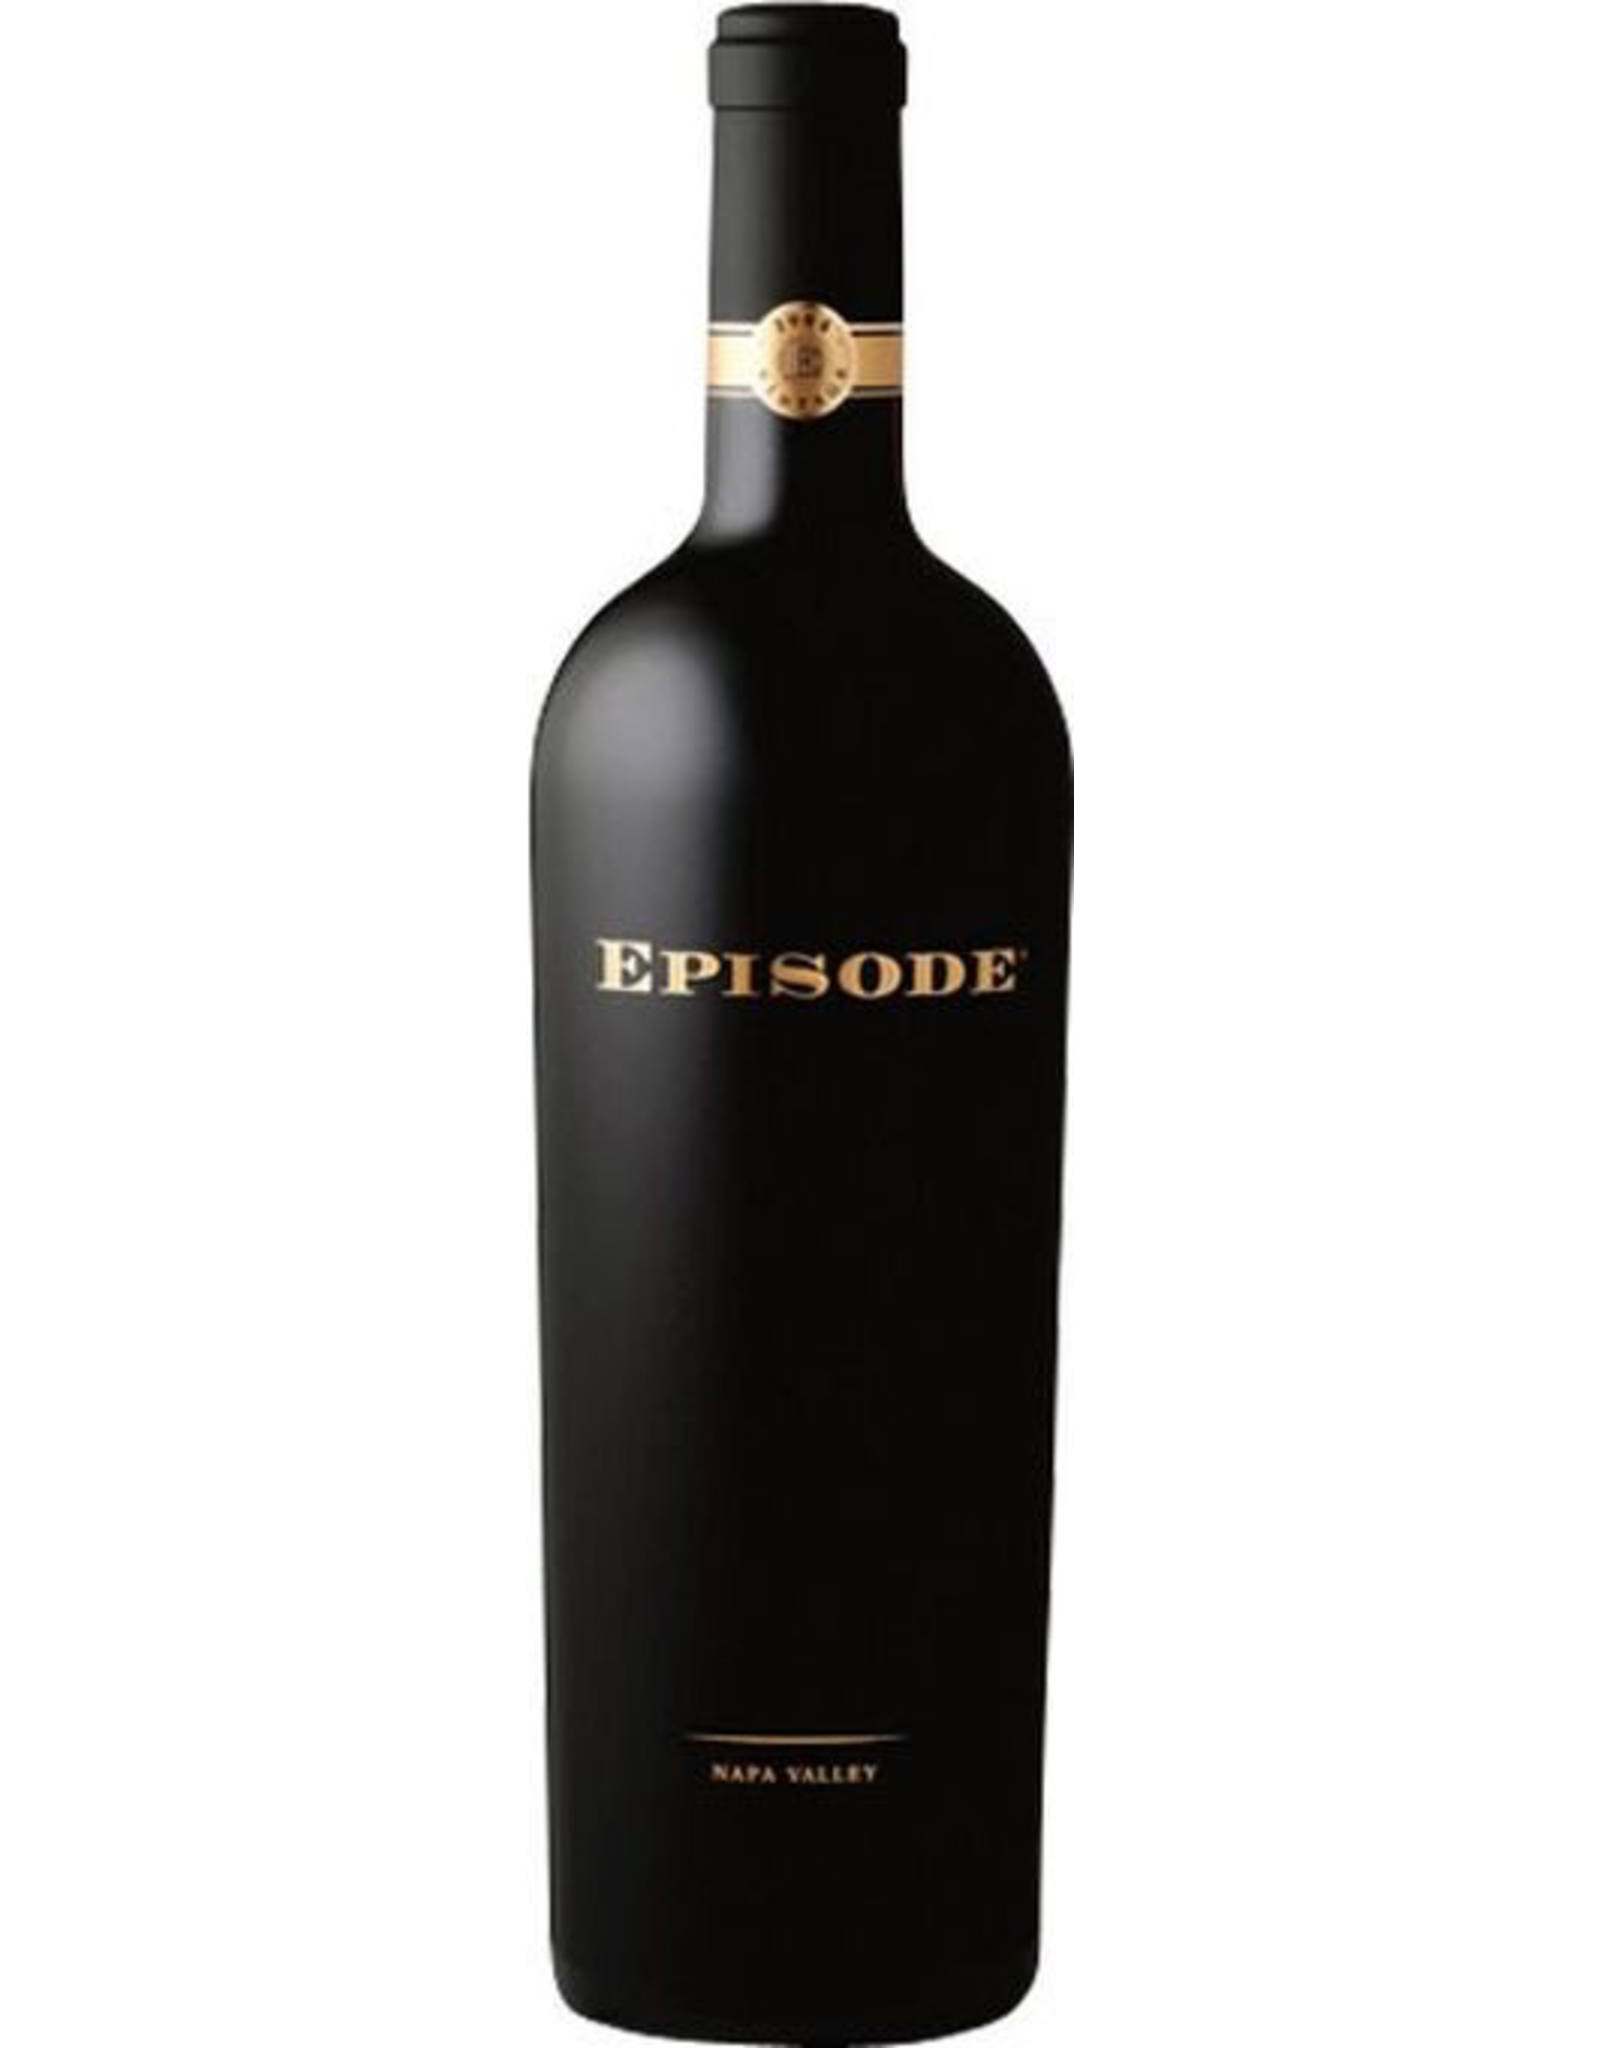 Red Wine 2007, EPISODE by Terlato Vineyards, Red Bordeaux Blend, Rutherford, Napa Valley, California, 14.4% Alc, TW97